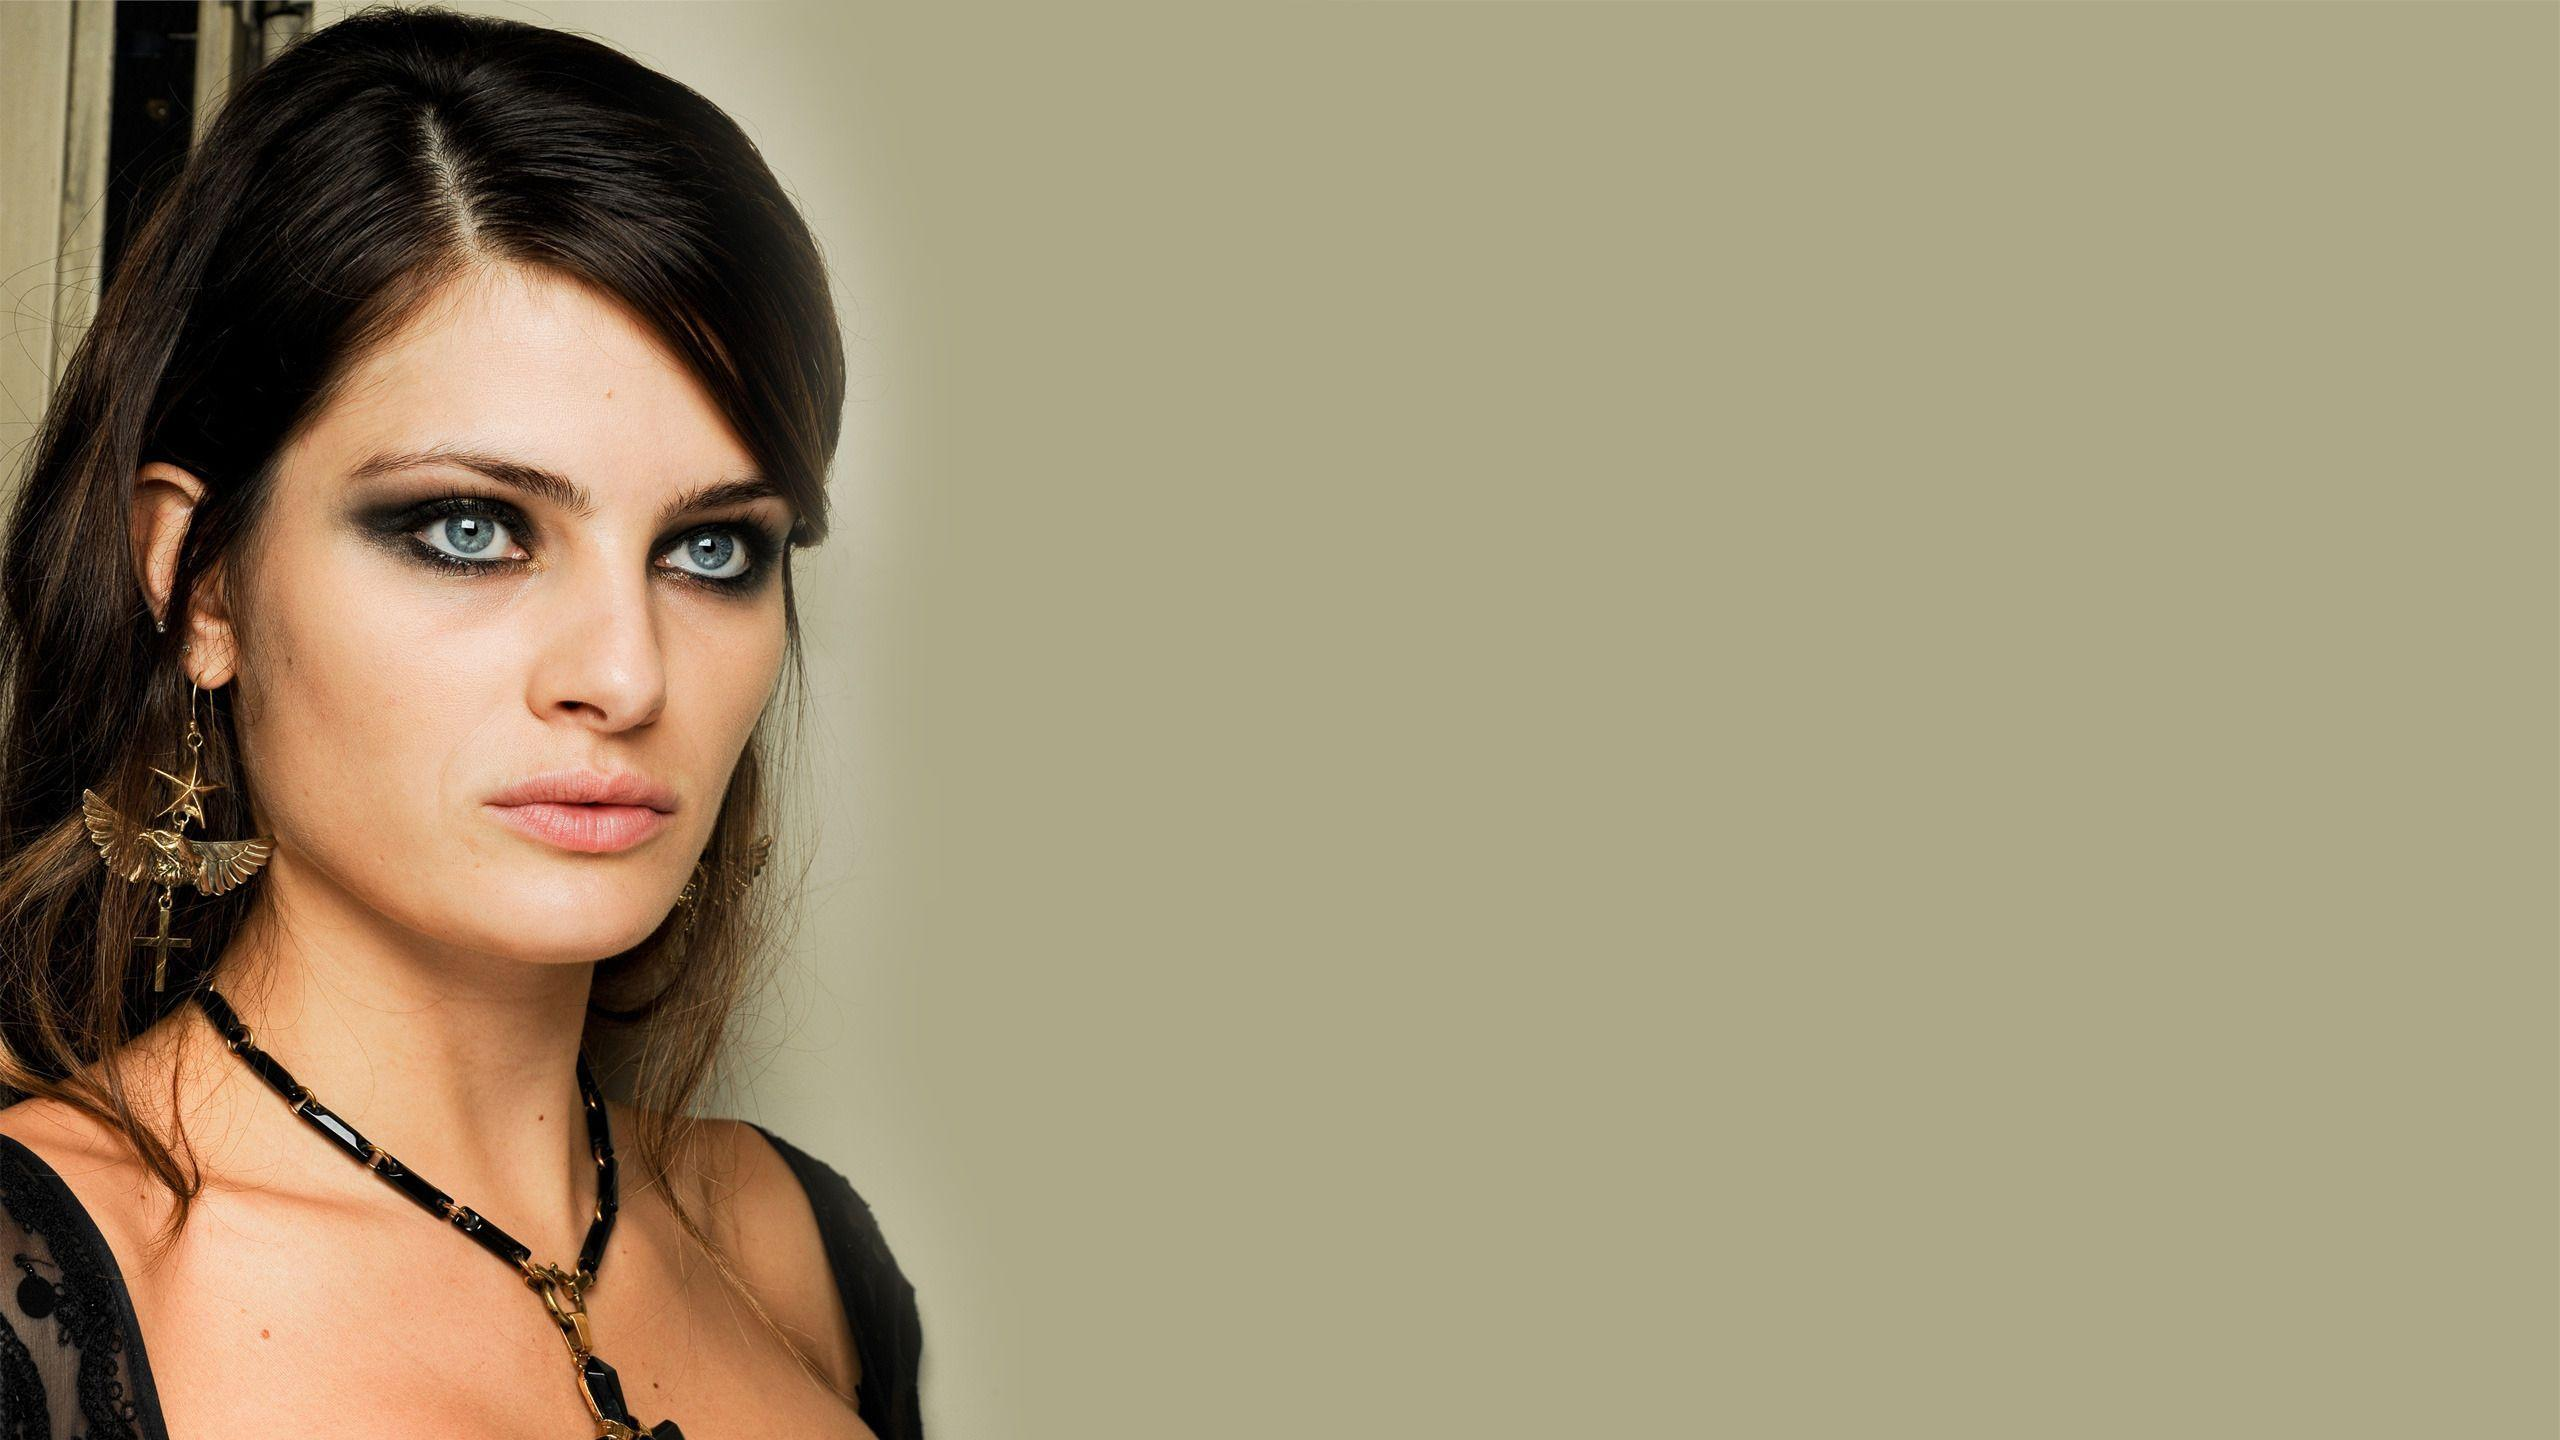 Isabeli Fontana Smoky Eyes - Isabeli Fontana Smoky Eyes